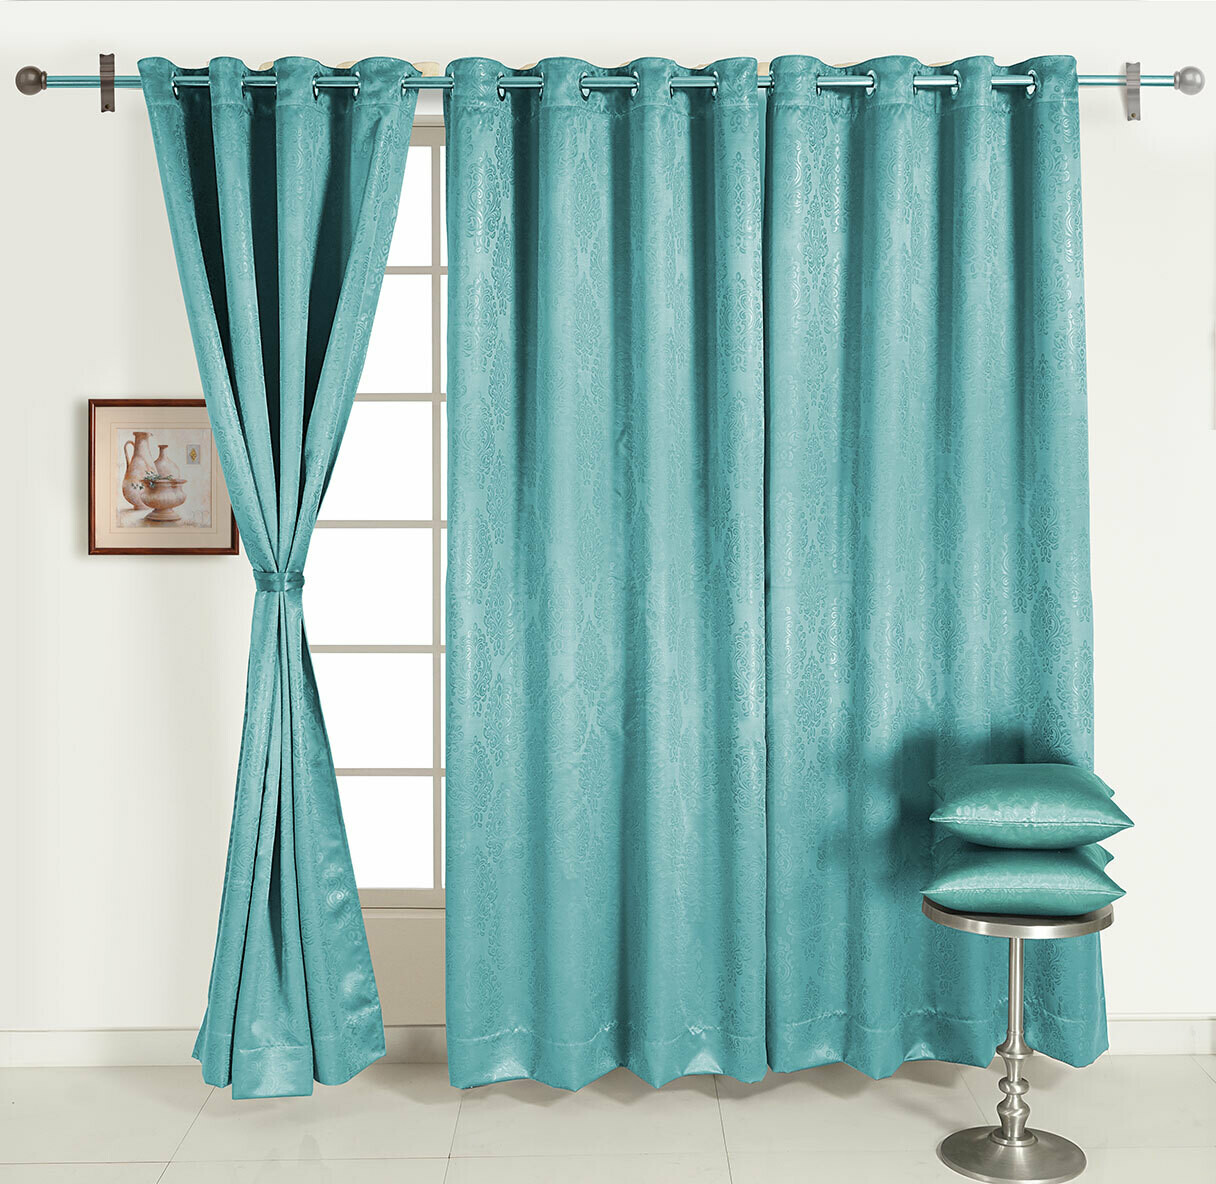 Swayam Turquoise Colour Motif J&B Blackout Eyelet Curtain for Door